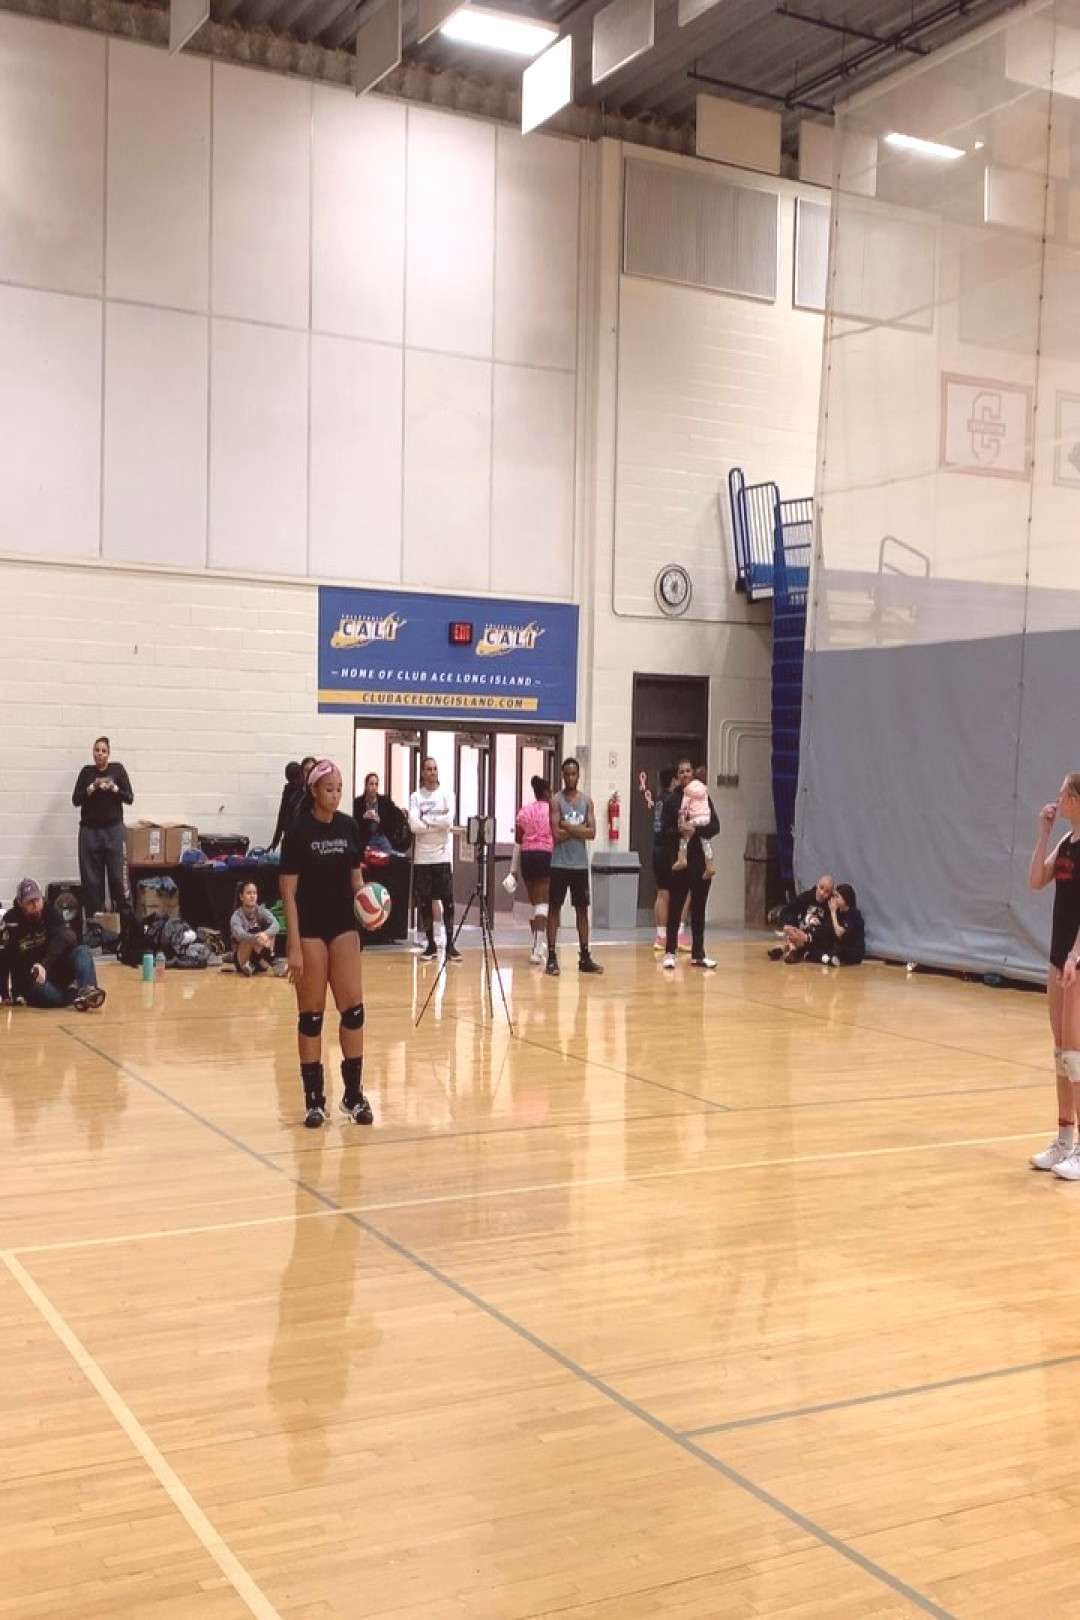 Volleyballsetter Midweek Anyone Should Needs Case Dose This Fun Wer In Of Do A In Case Anyone Needs In 2020 Volleyball Setter Volleyball Basketball Court